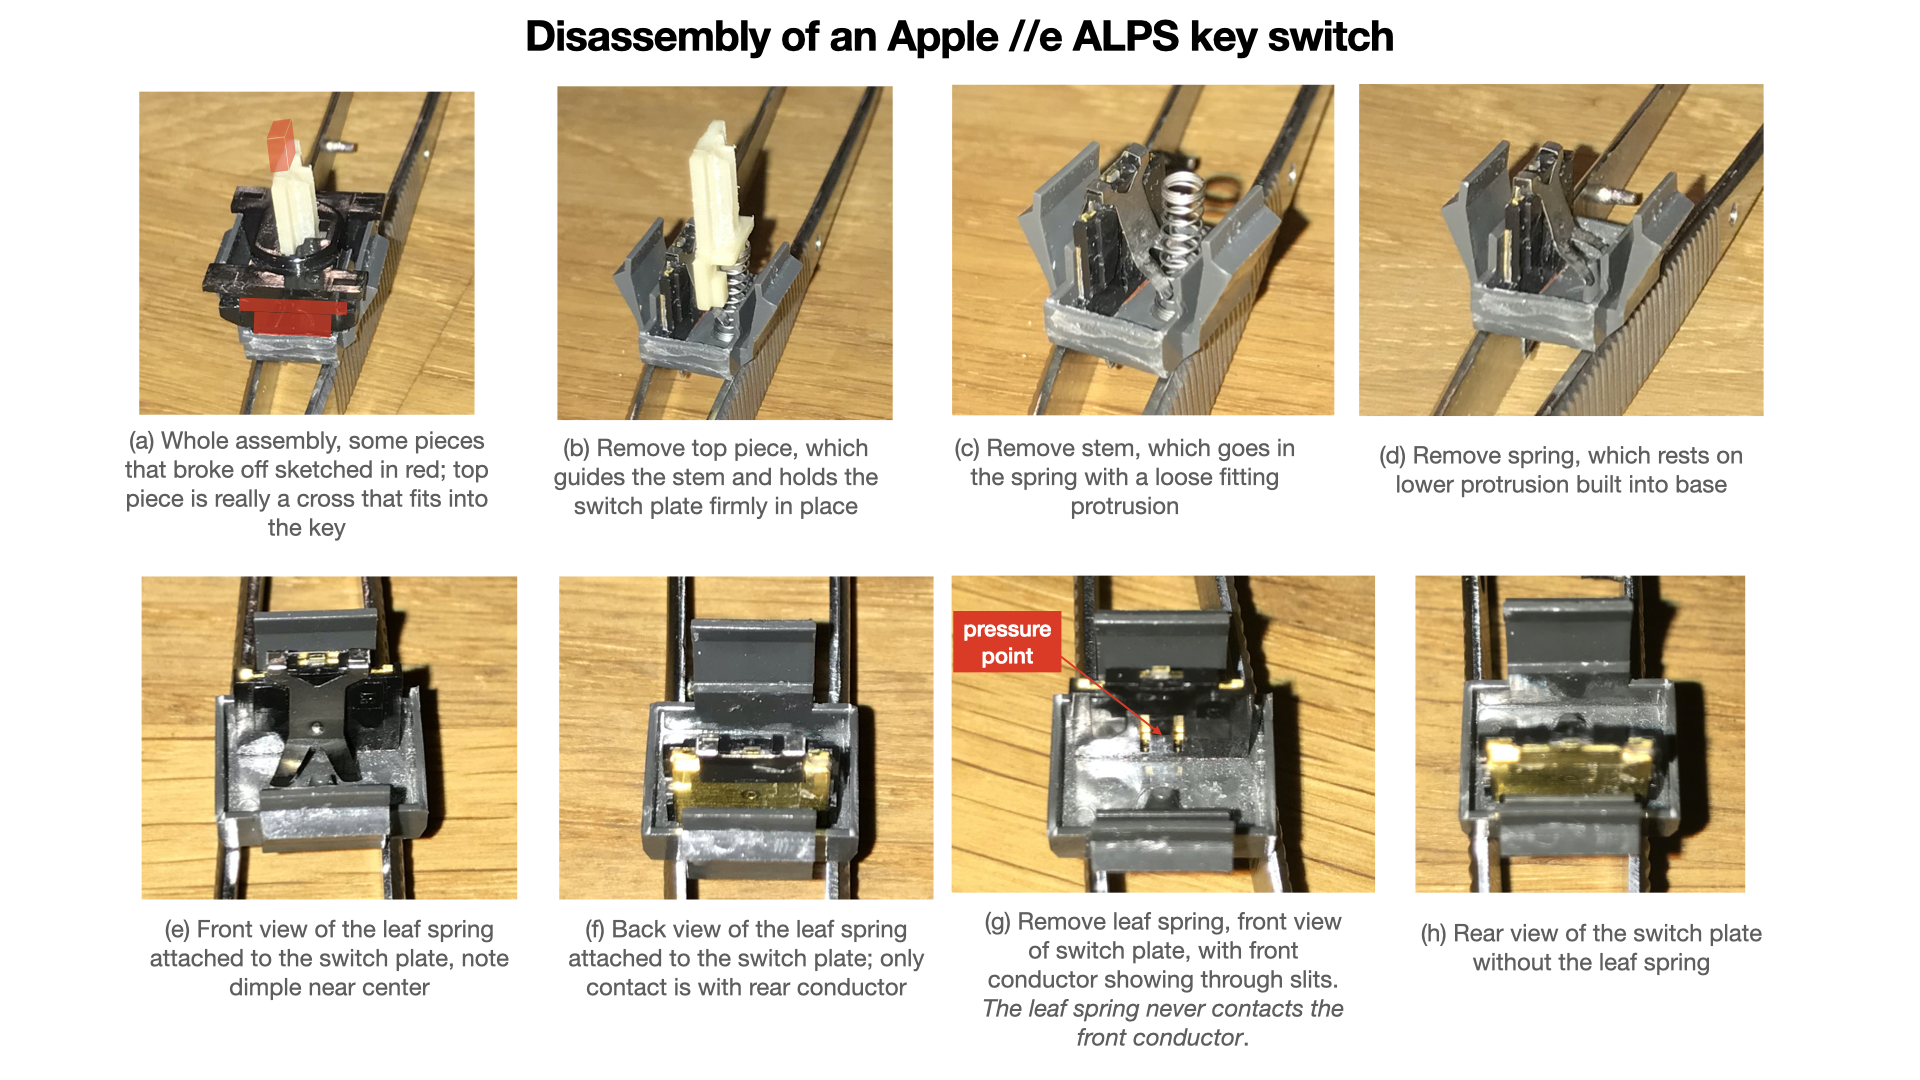 ALPS key switch disassembly sequence